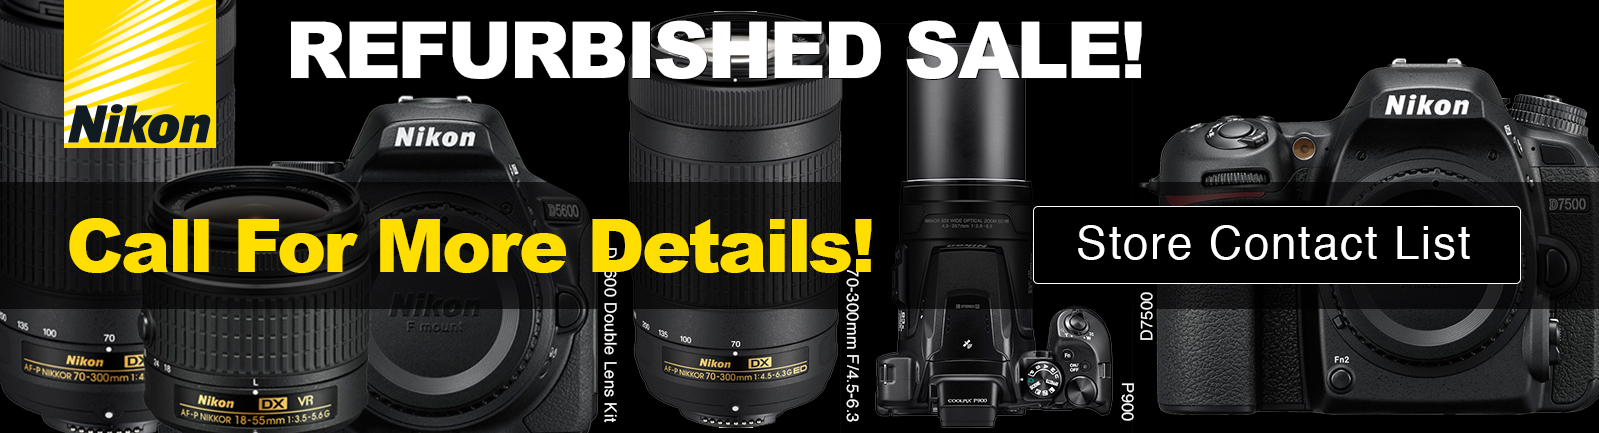 Refurbished & Open Box Specials | Hunt's Photo & Video